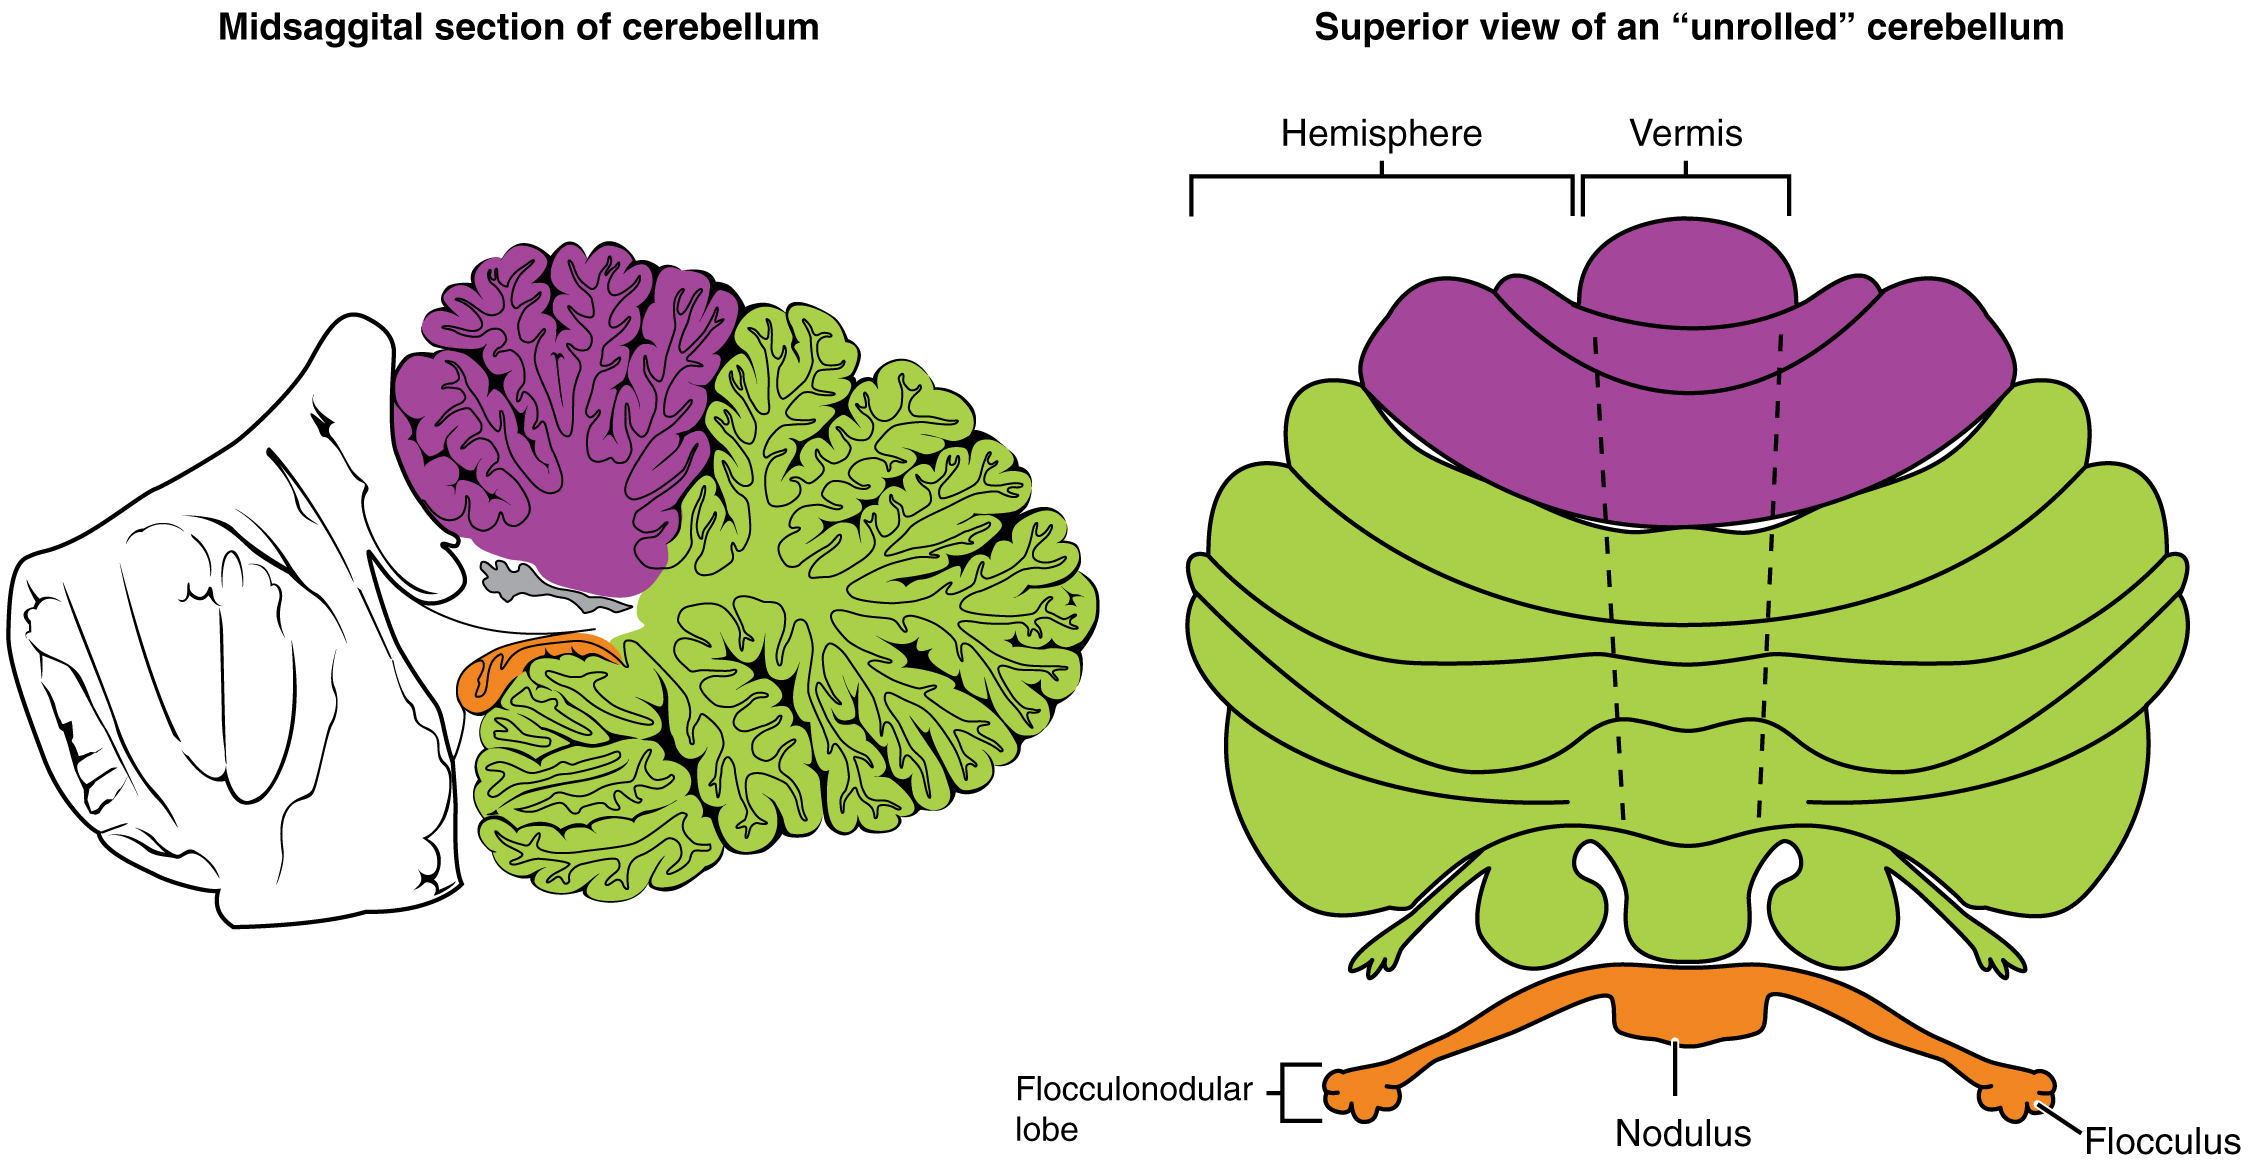 The left panel of this figure shows the midsagittal section of the cerebellum, and the right panel shows the superior view. In both panels, the major parts are labeled.